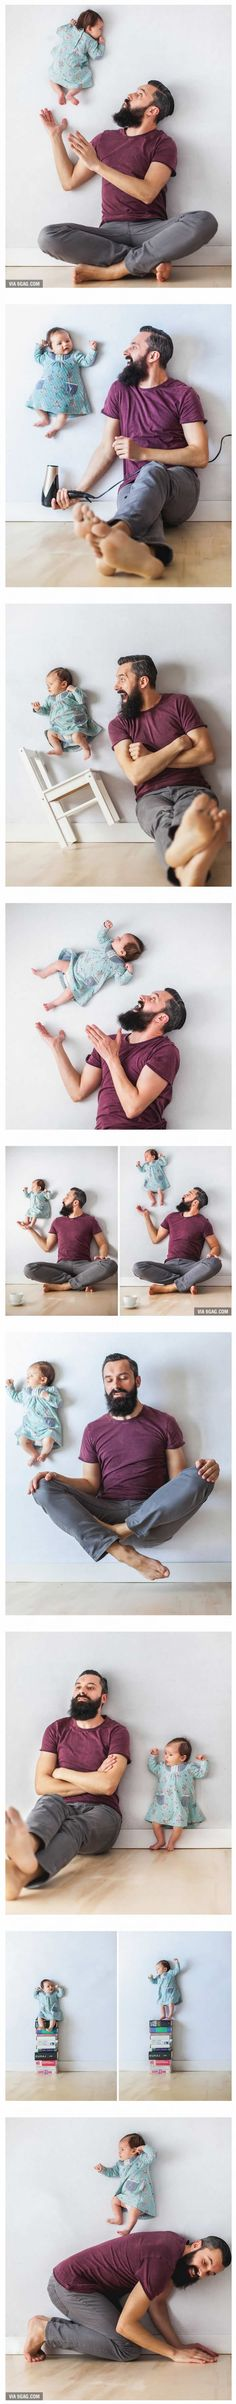 Dad takes fun pictures with one-month-old daughter(Diy Photo Shoot) Foto Newborn, Newborn Baby Photos, Newborn Pictures, Baby Boy Newborn, Baby Pictures, Cute Pictures, Dad Baby, Baby Love, Newborn Baby Photography